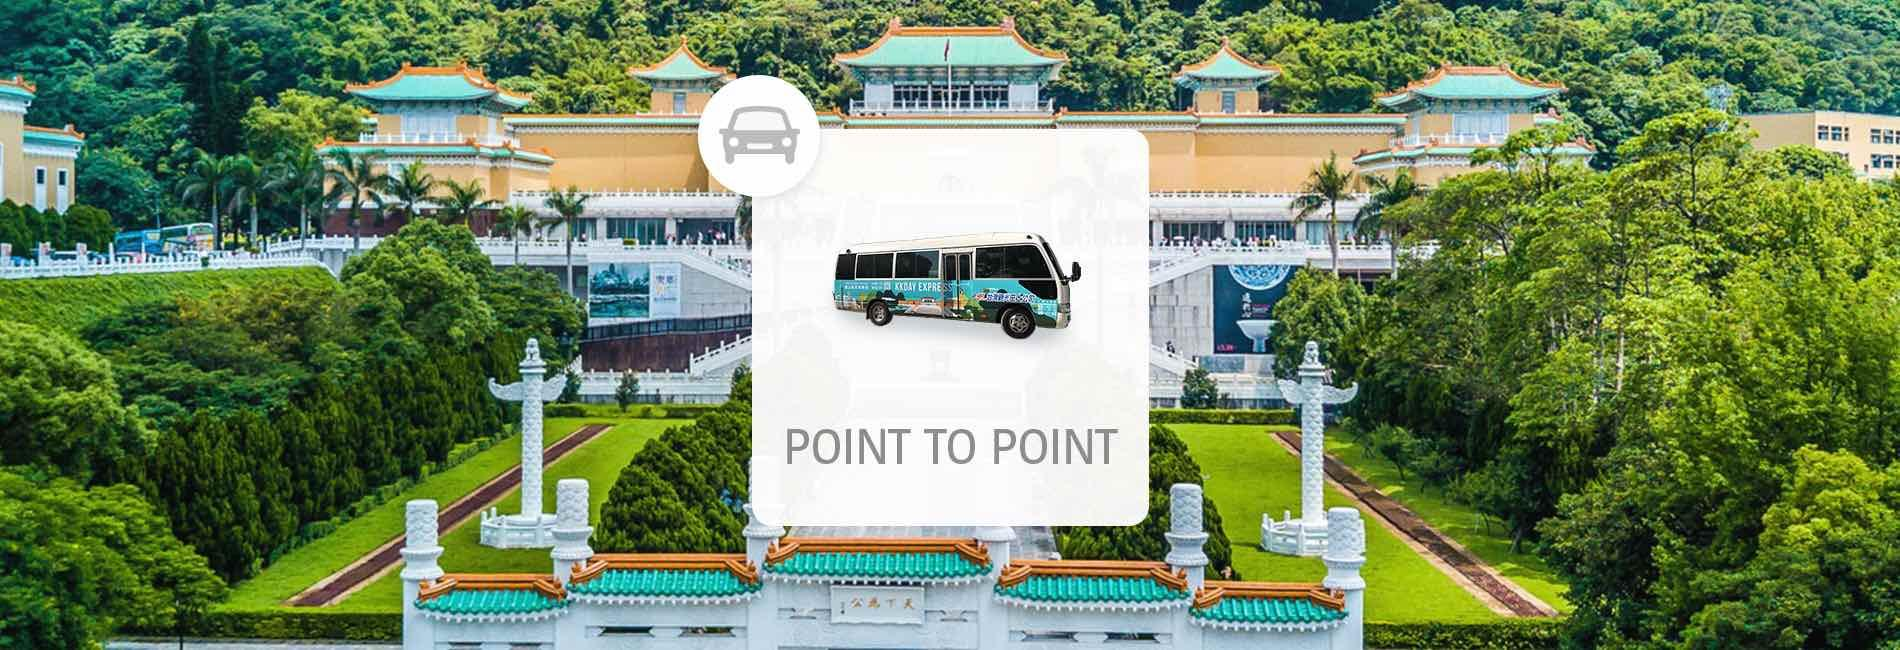 KKday Express Shuttle Bus: Taipei 101 Observation Deck to National Palace Museum